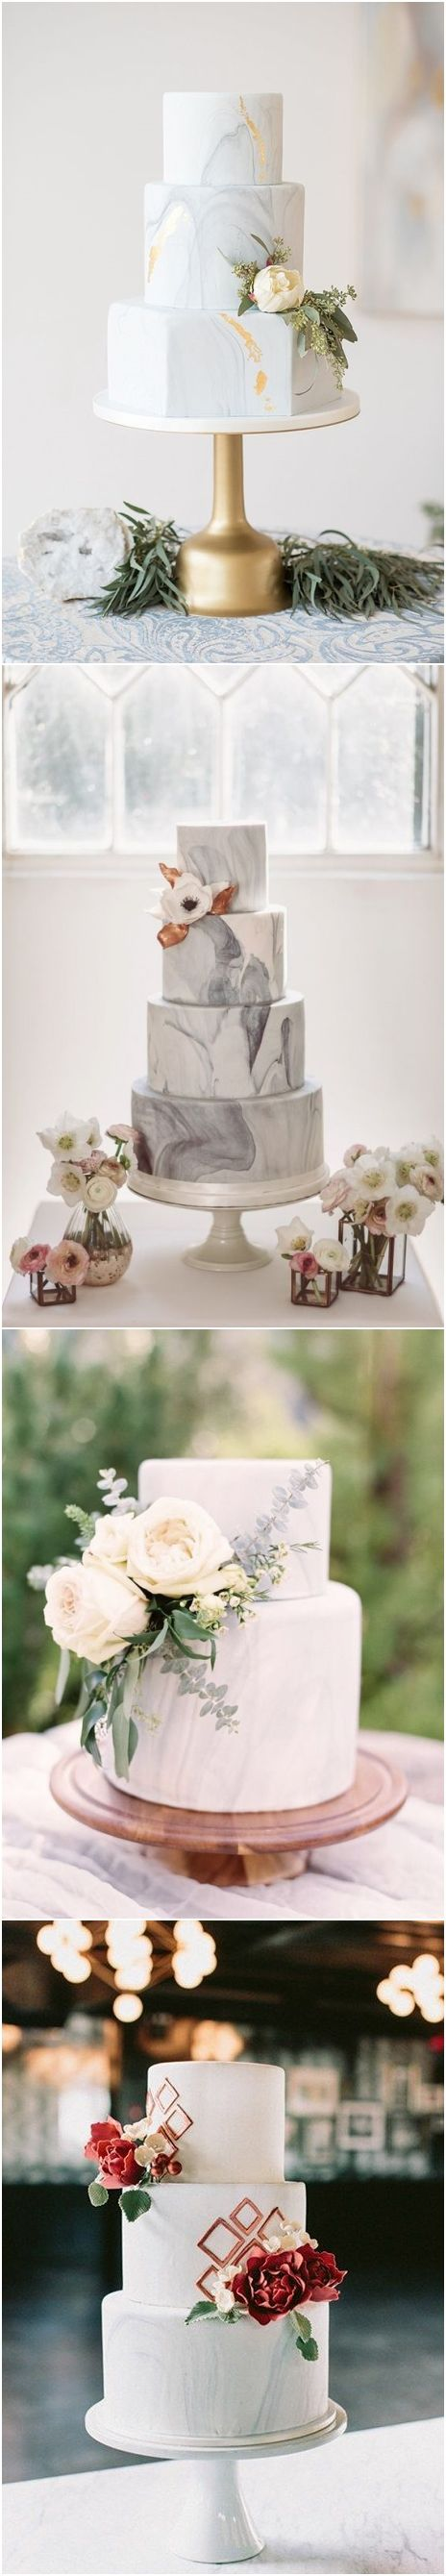 1073 best Wedding Cakes images on Pinterest   Anniversary cakes ...